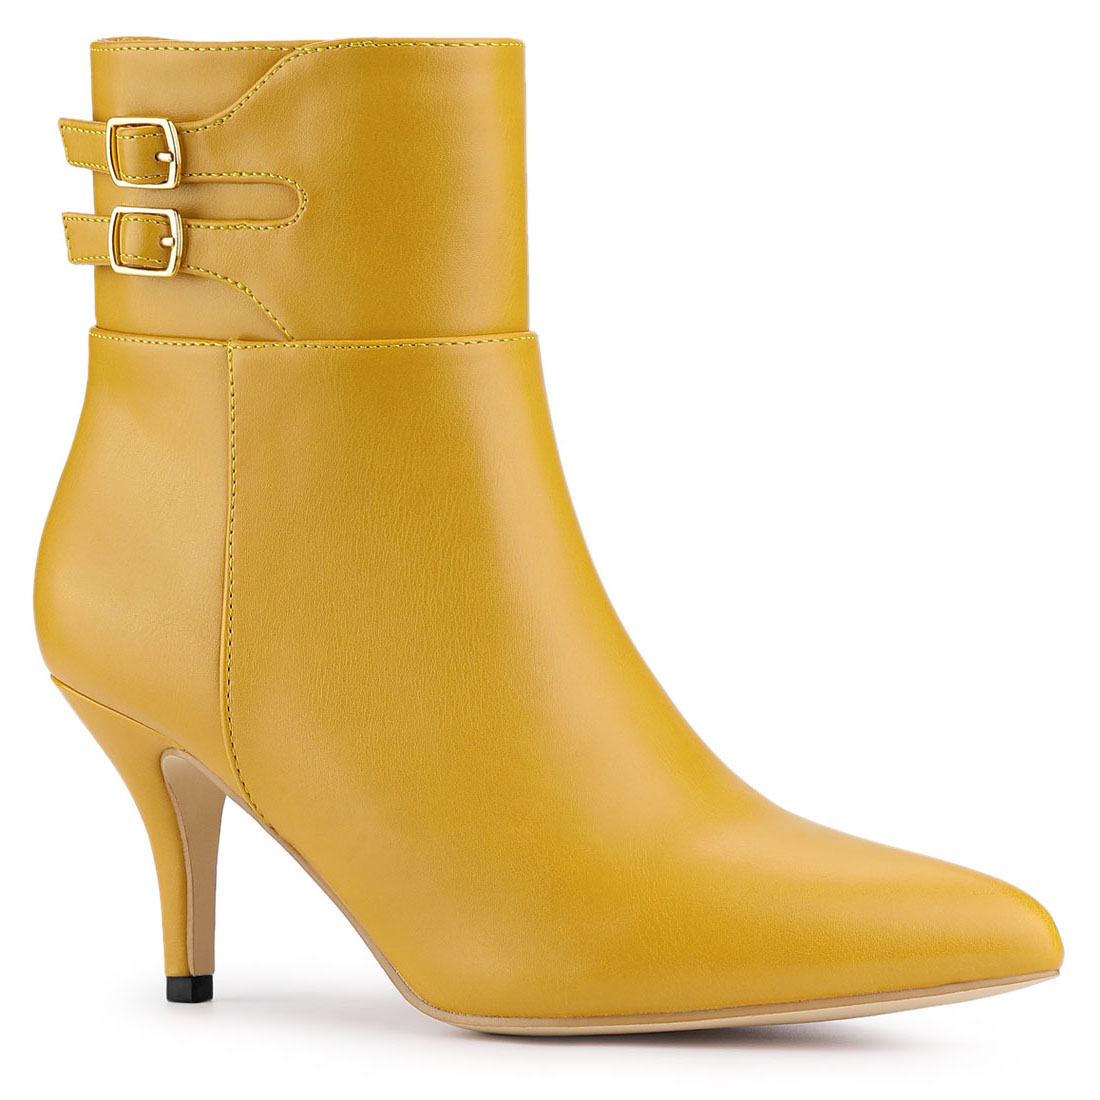 Details about  /Womens Pointed Toe Mid Block Heels Buckle Ankle Boots Casual Booties Shoes Size